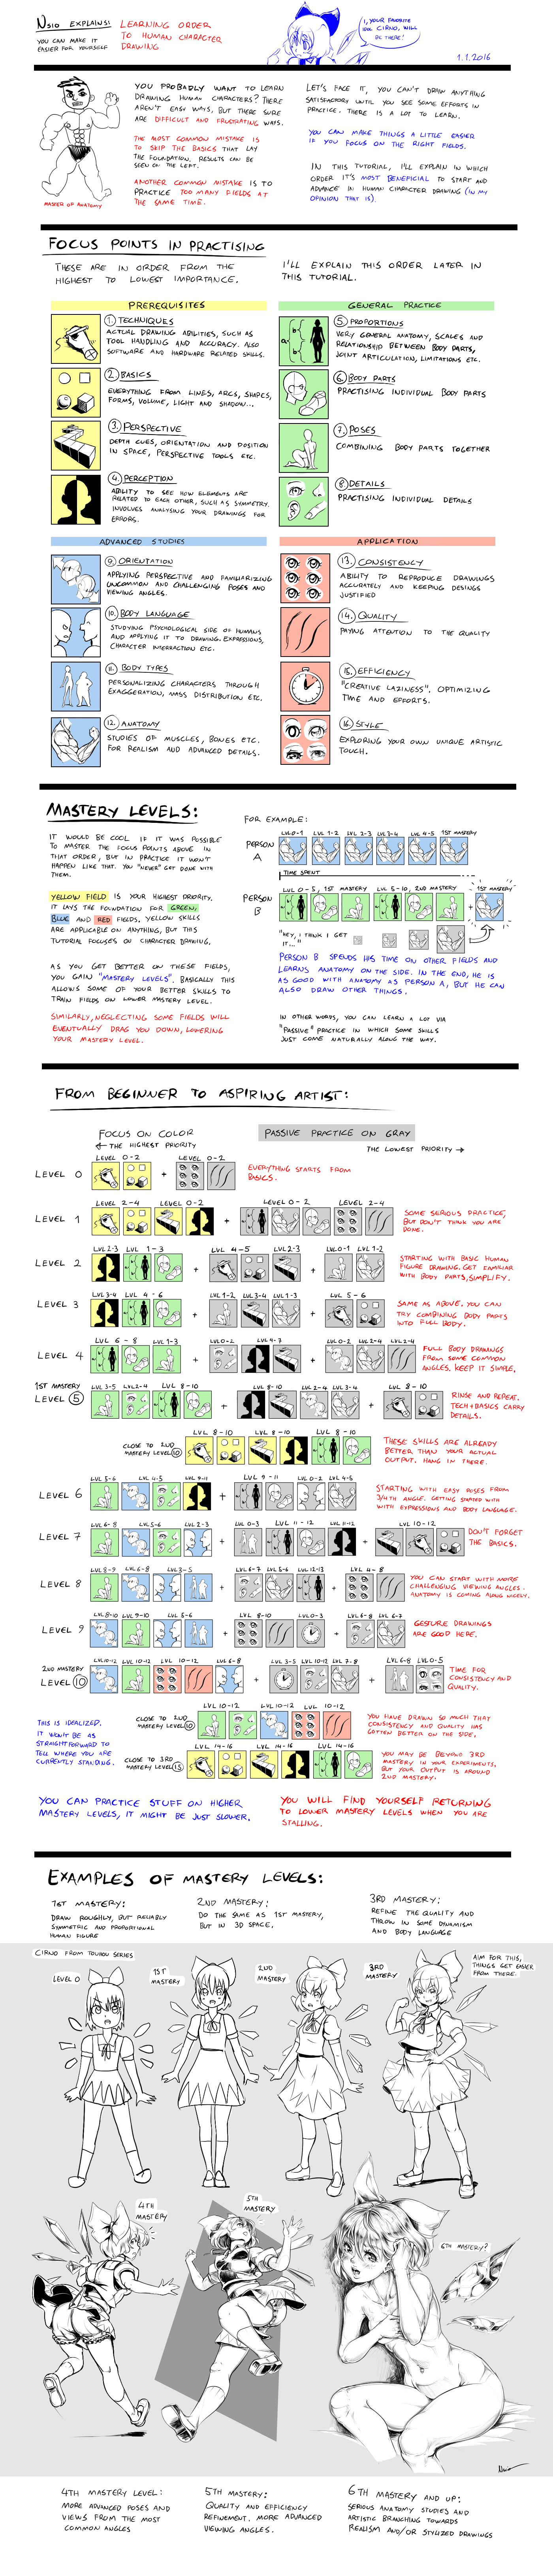 nsio_explains__learning_order_to_human_drawing_by_nsio-d9mc0ru.png